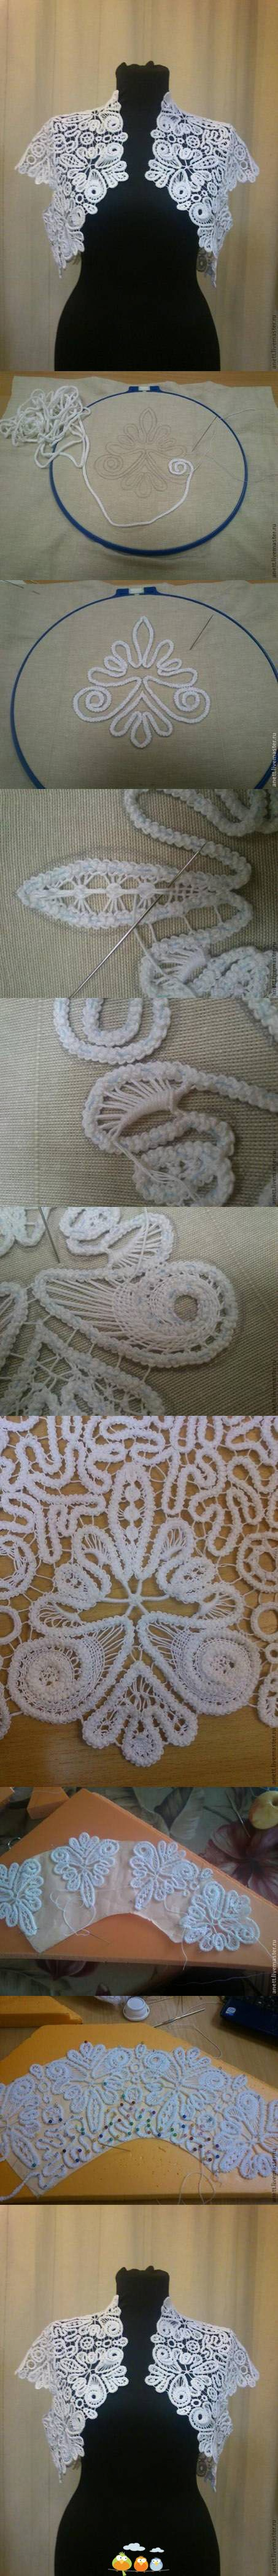 Romanian ace / macramé it is not cross stitch but very interesting